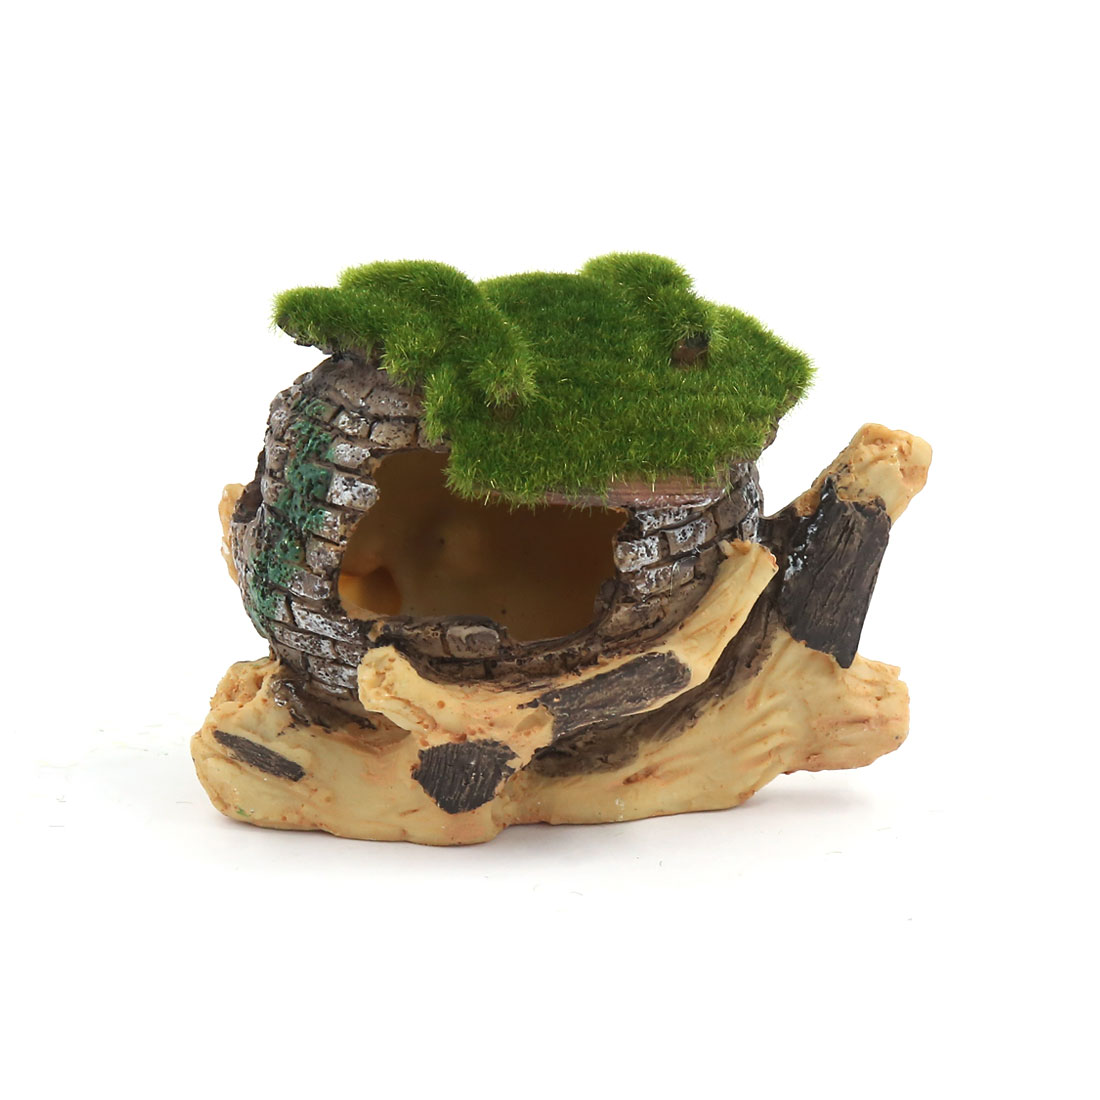 Aqua Landscape Artificial Tree House Decoration 9x6x8cm